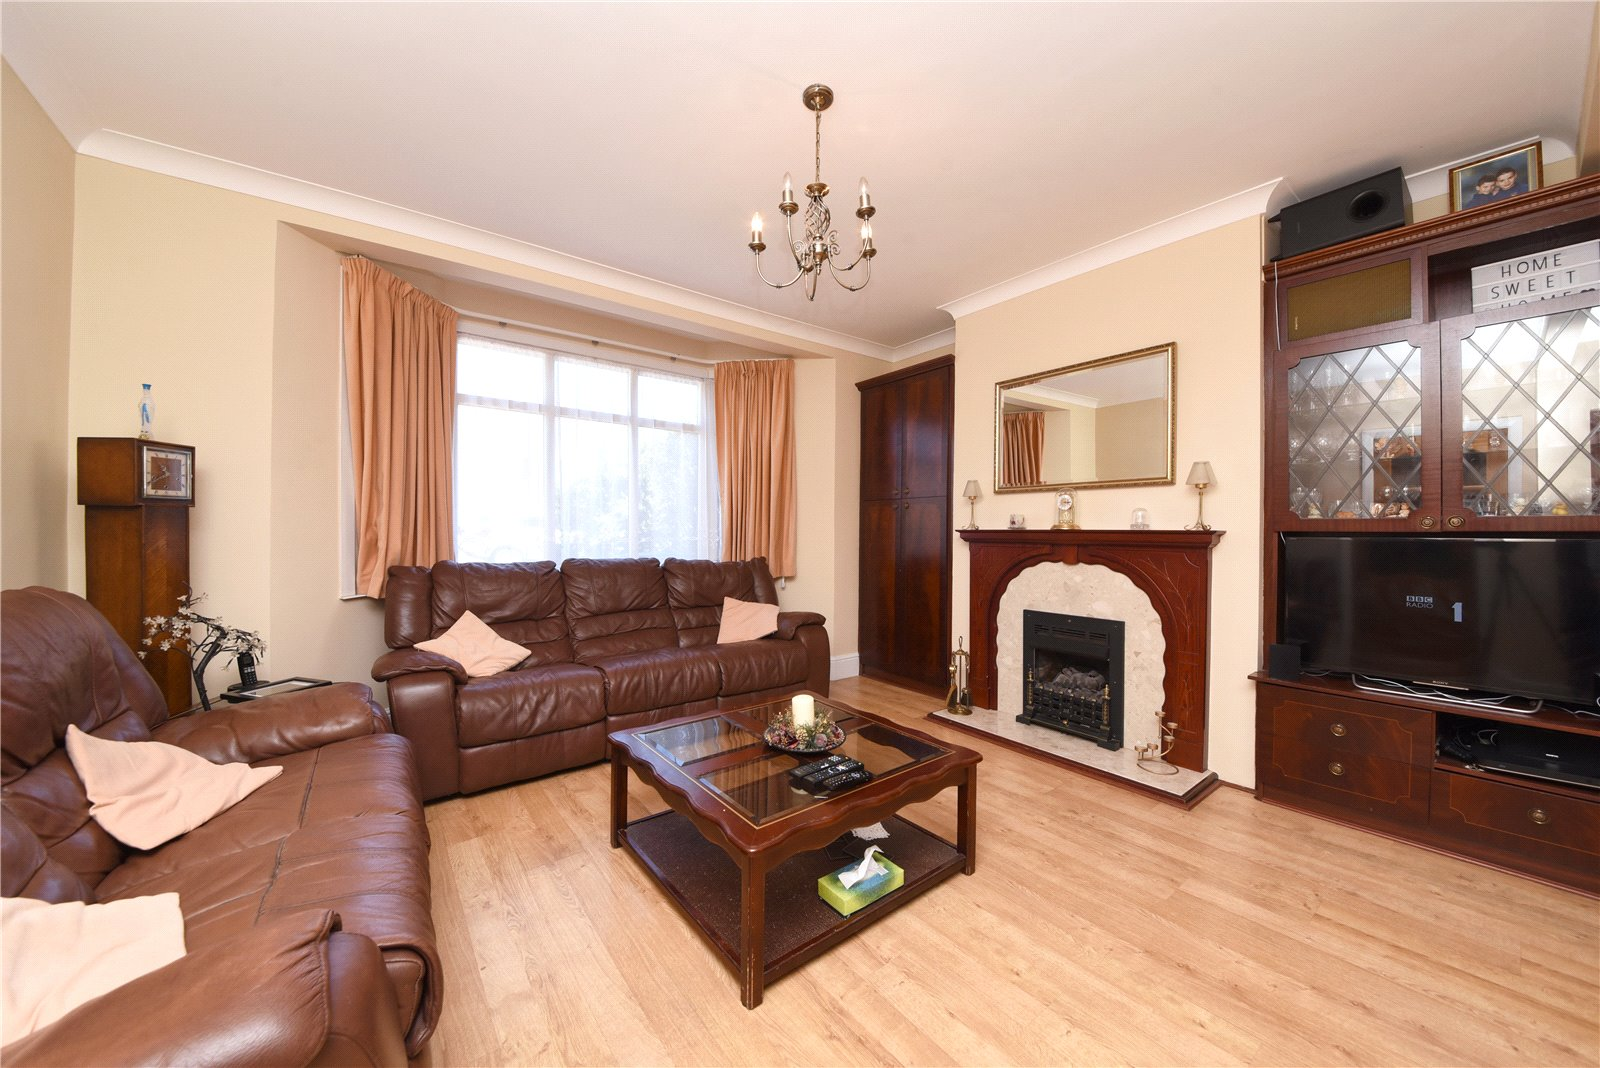 3 bed house for sale in Southgate, N14 4NY  - Property Image 2